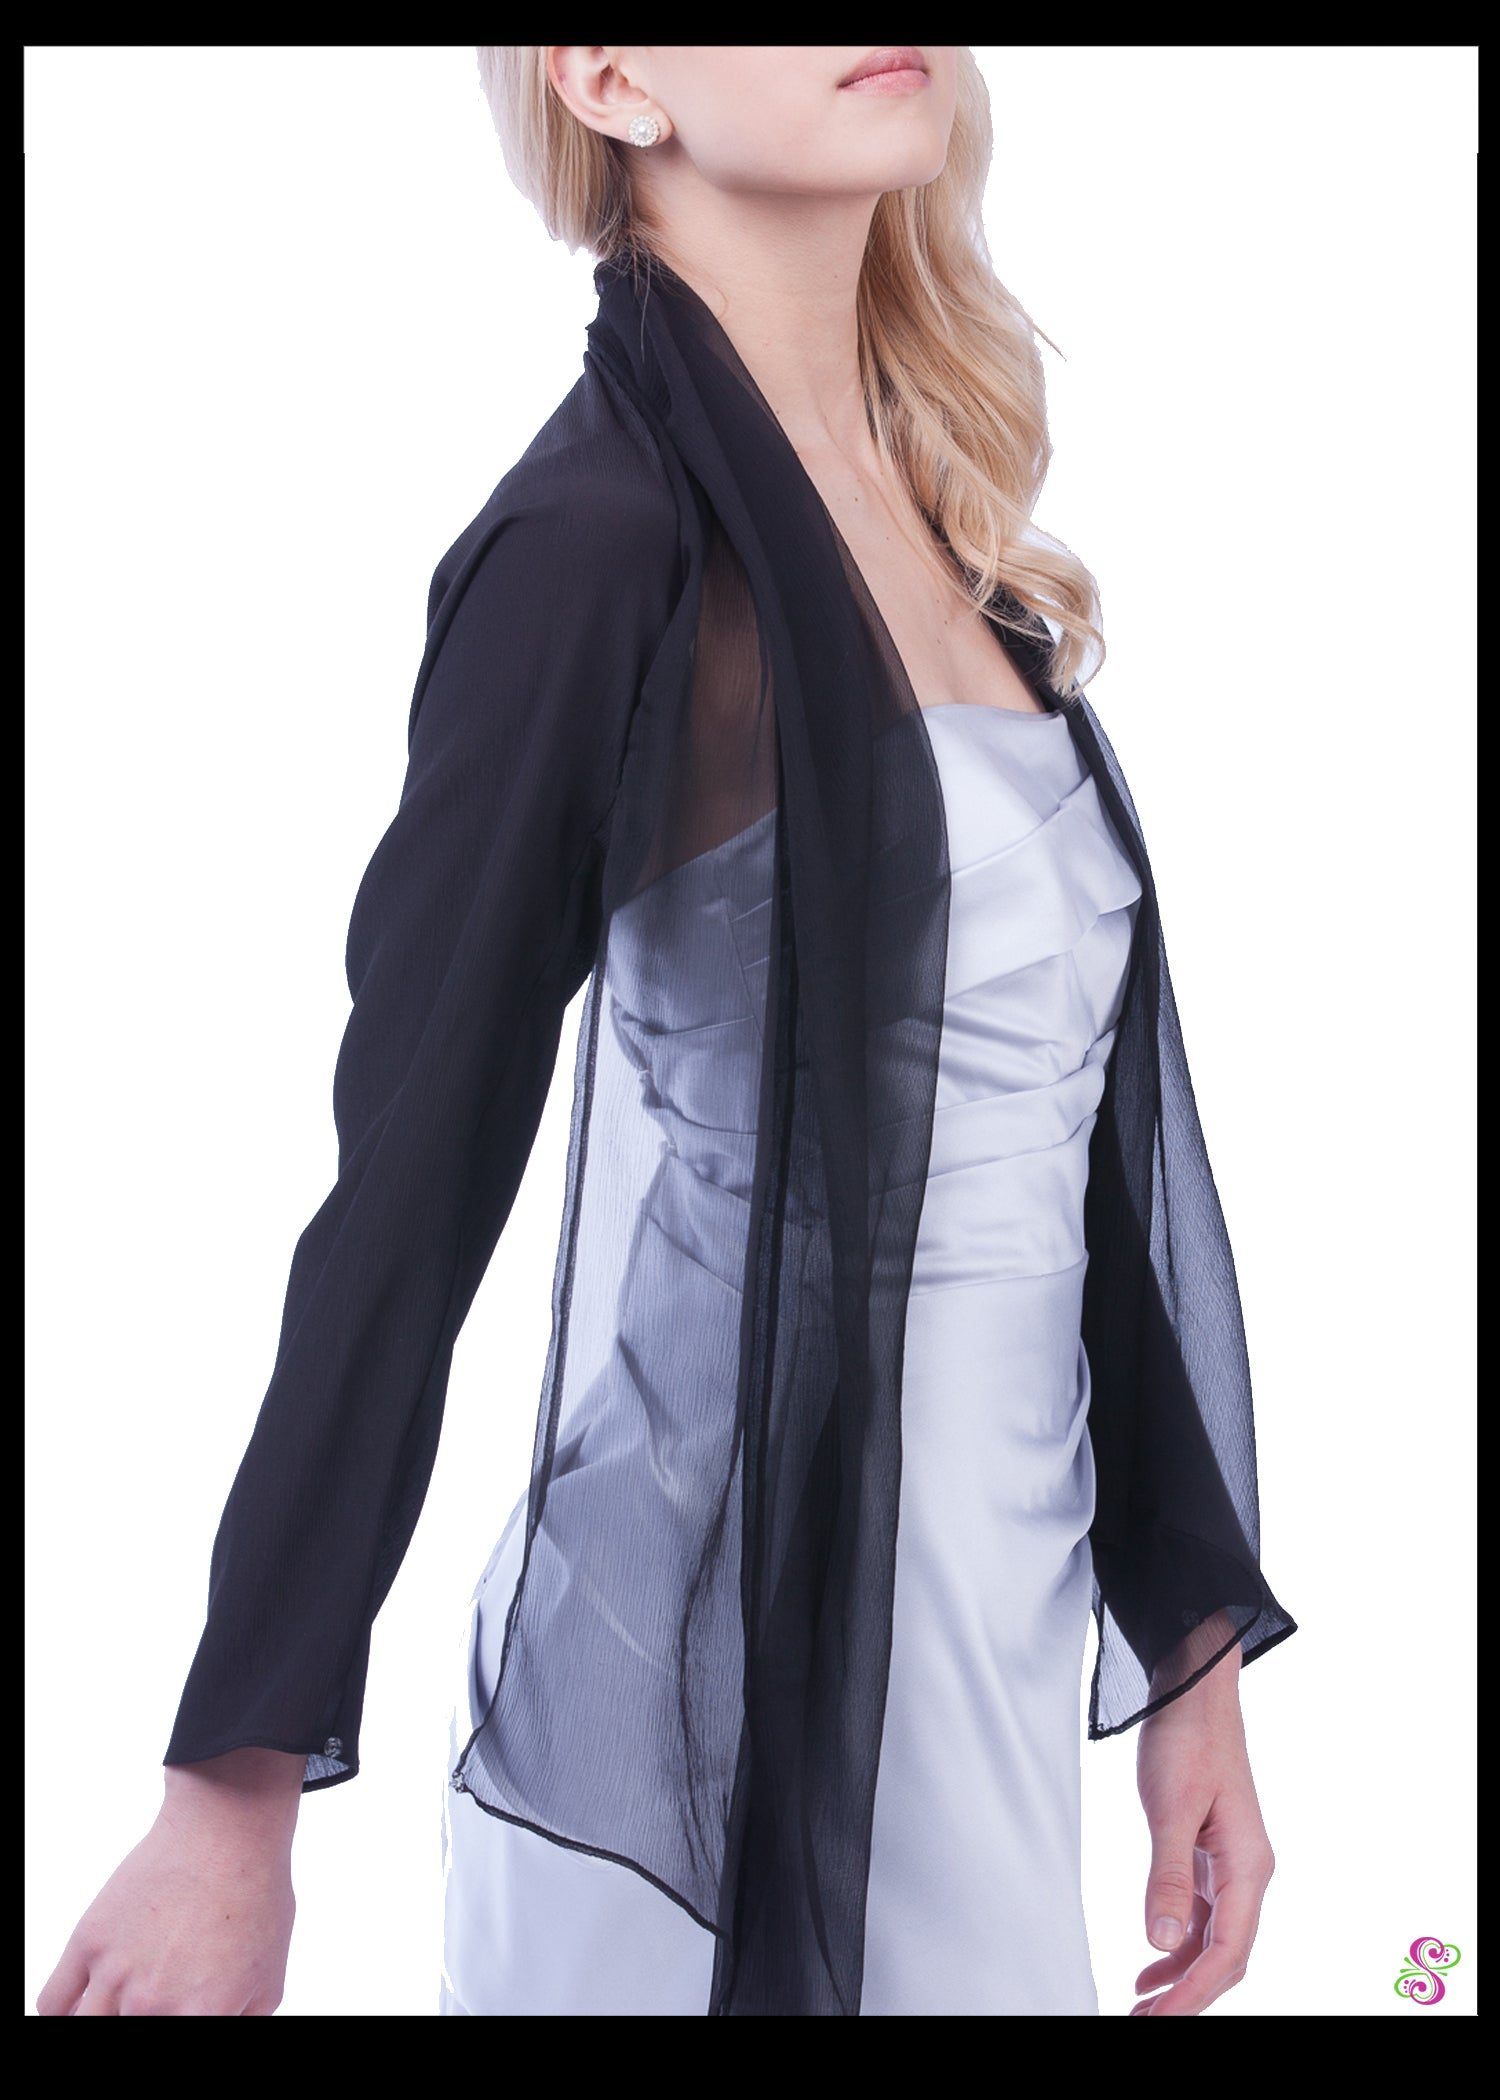 Audrey Cocktail Cape, 100% Silk, Black